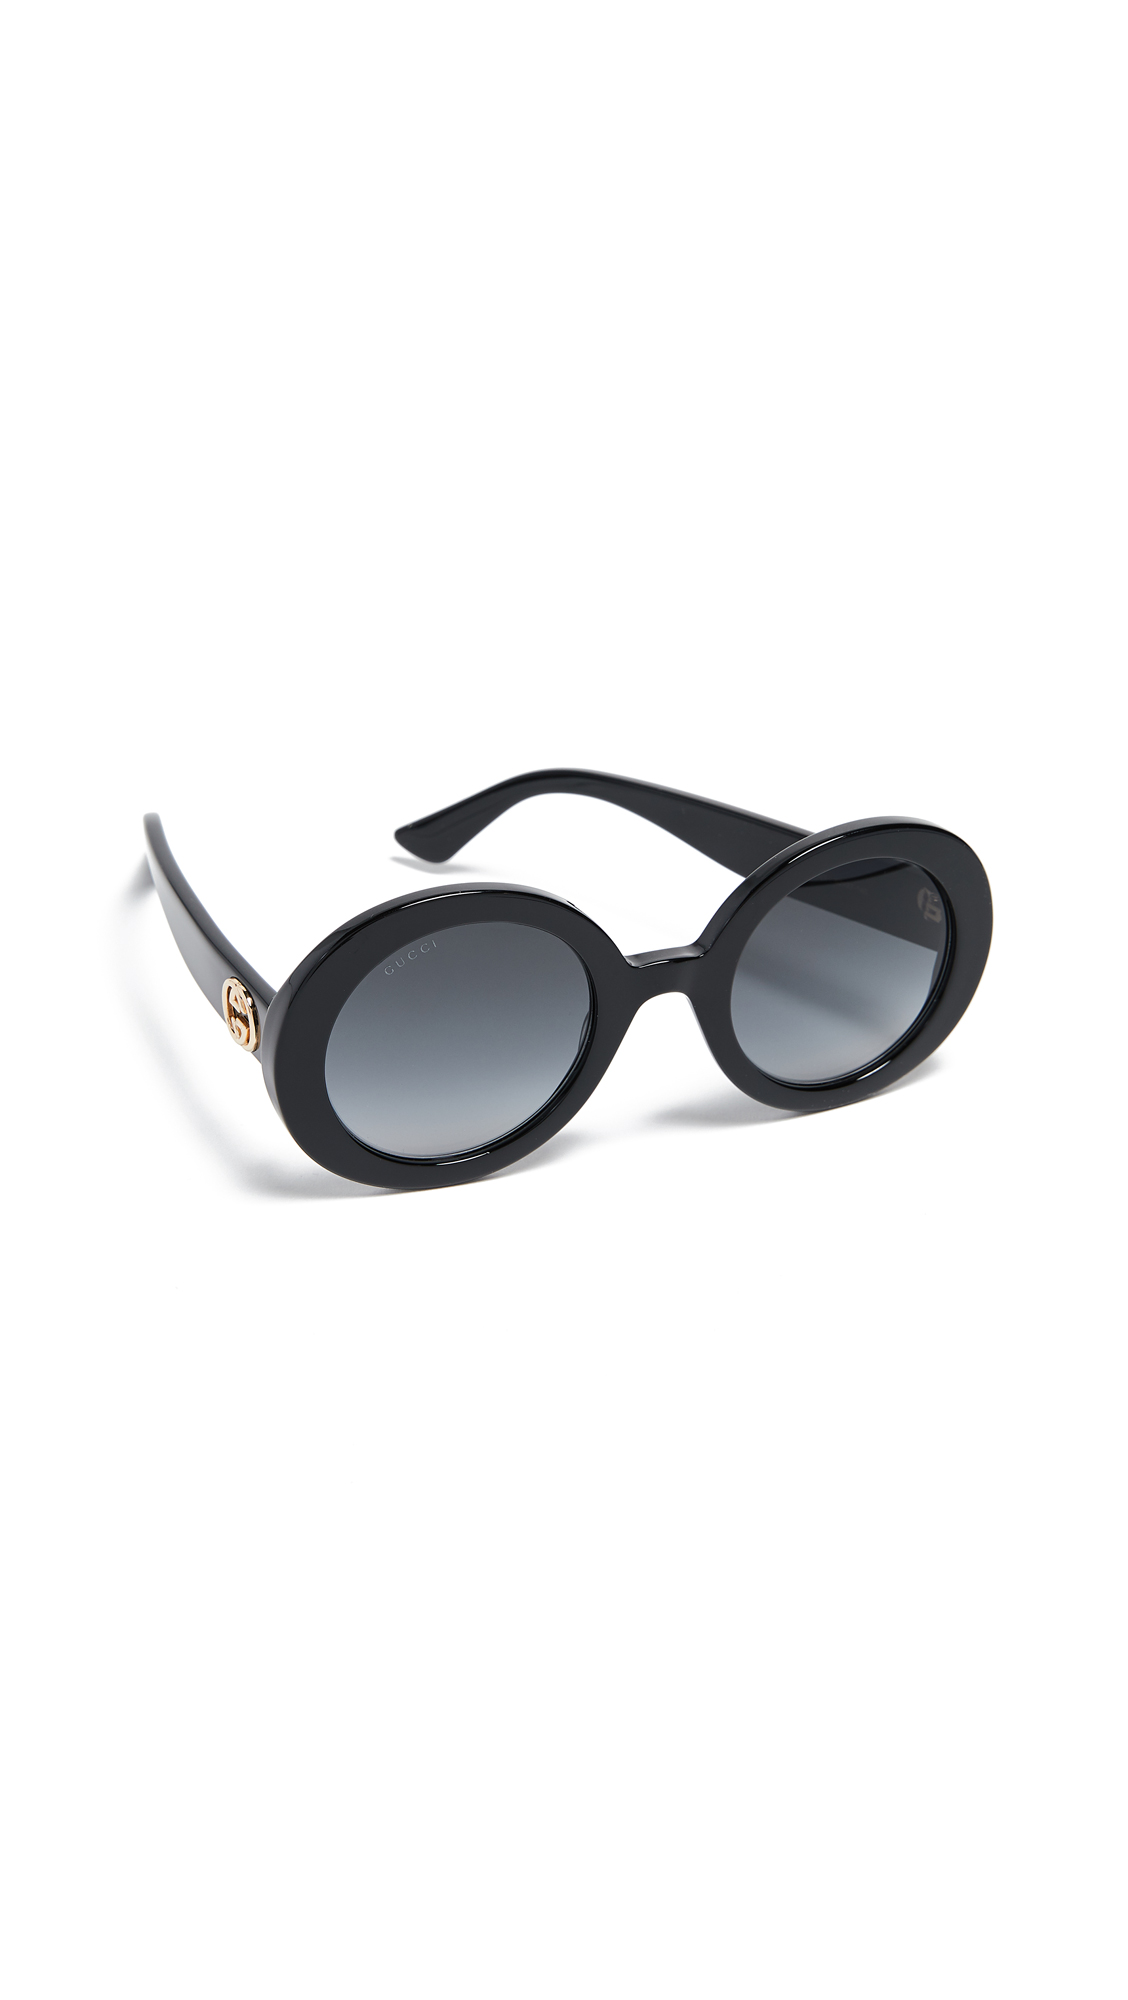 GG OVAL SUNGLASSES